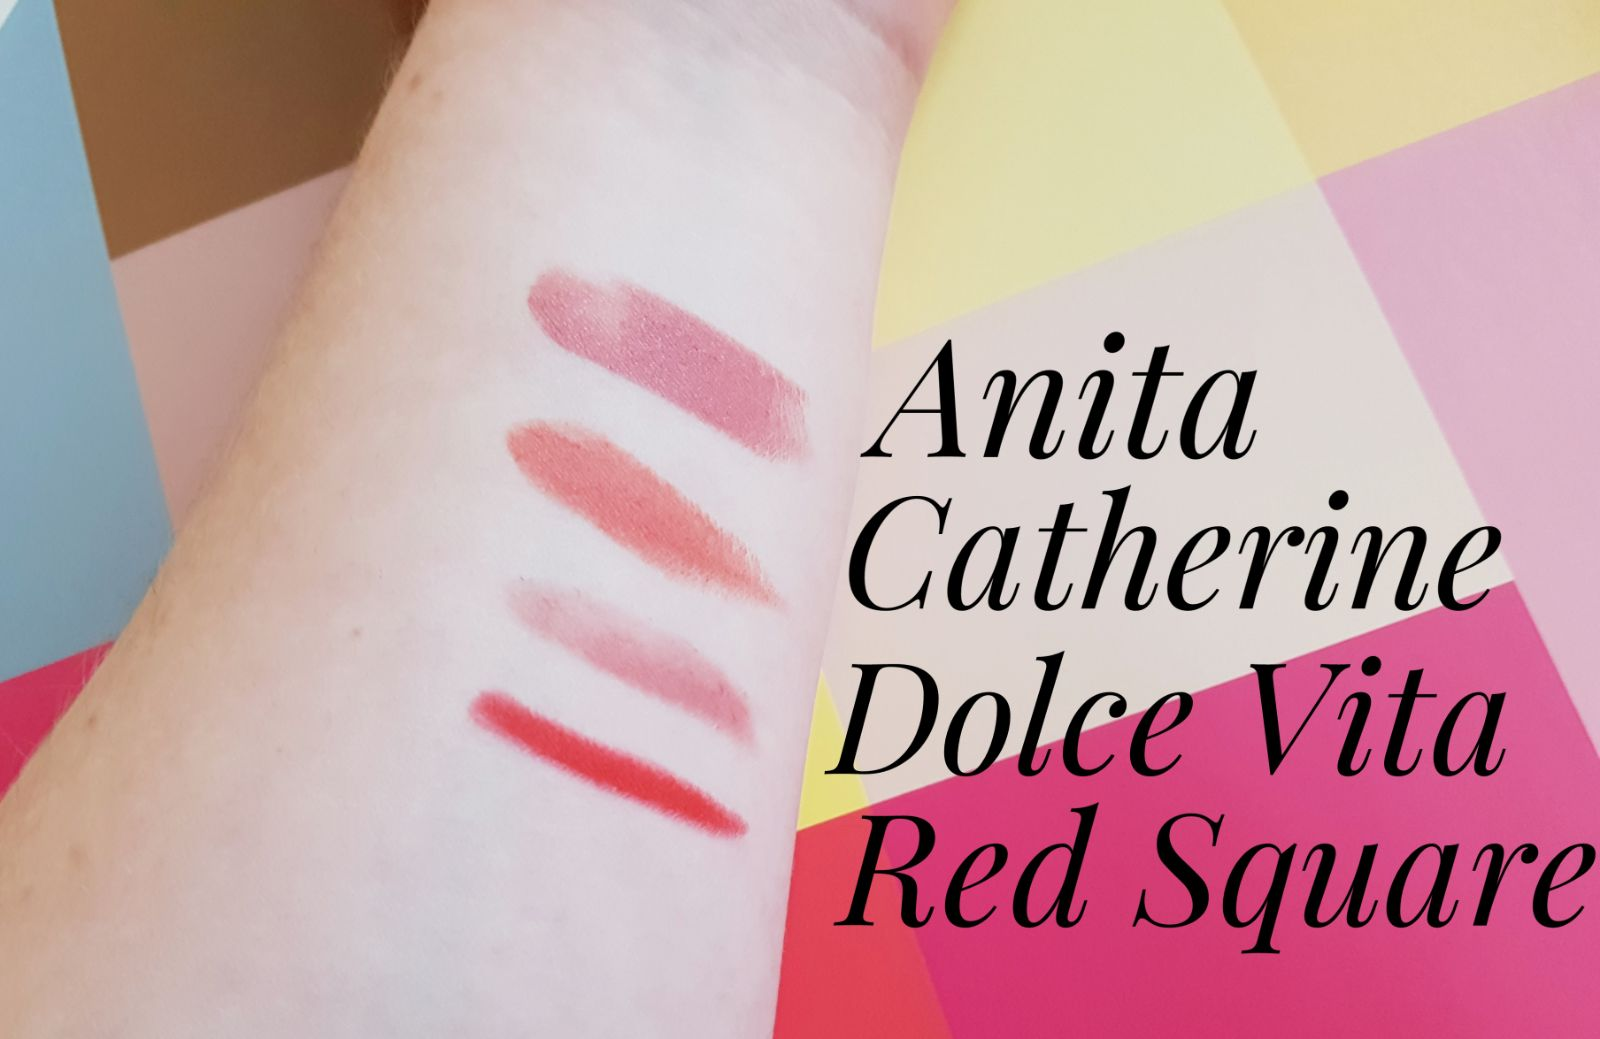 NARS Dolce Vita Swatch, NARS Catherine Swatch, NARS Anita Swatch, NARS Red Square Swatch